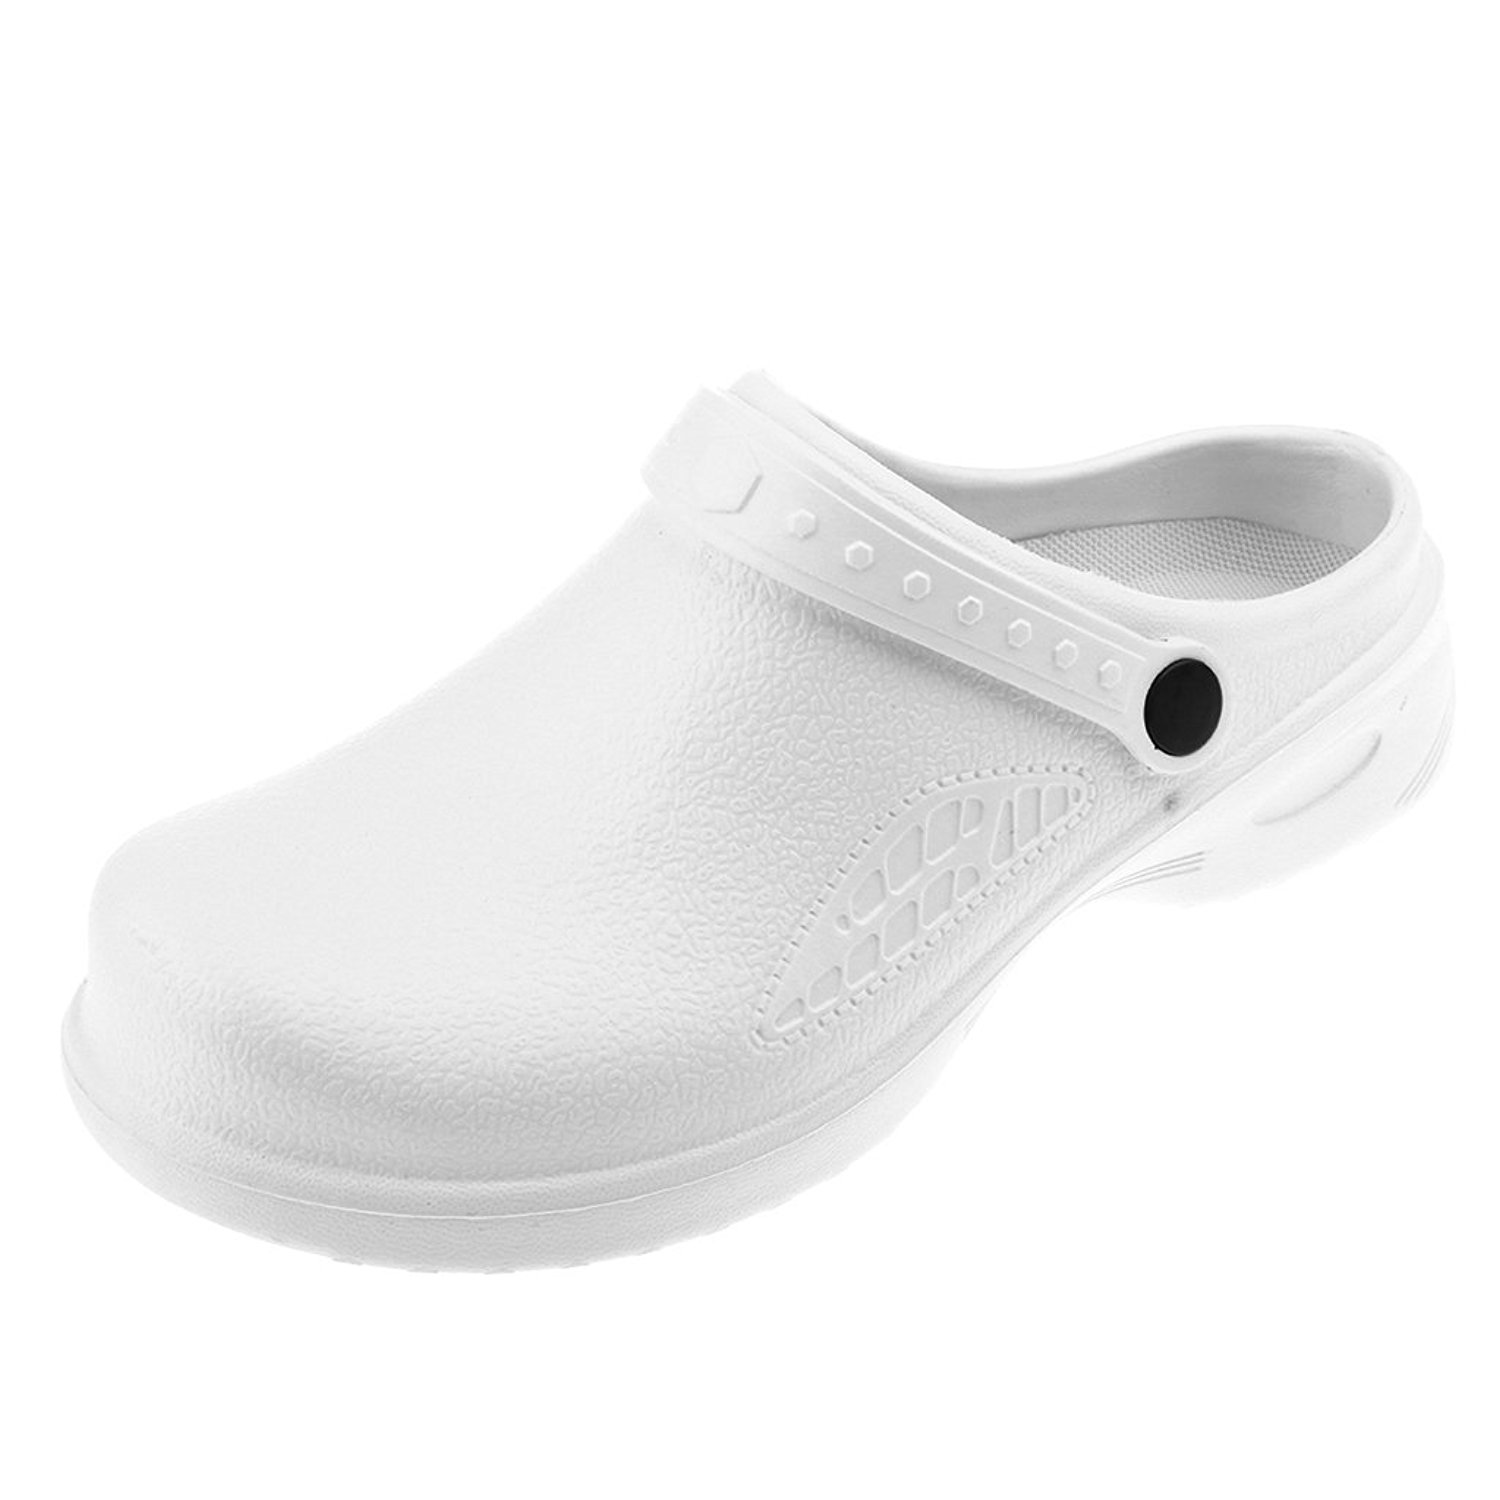 e5bc72bf77c Get Quotations · Prettyia Men Women Cook Medical Nursing Shoes Ultralite  Clogs with Strap